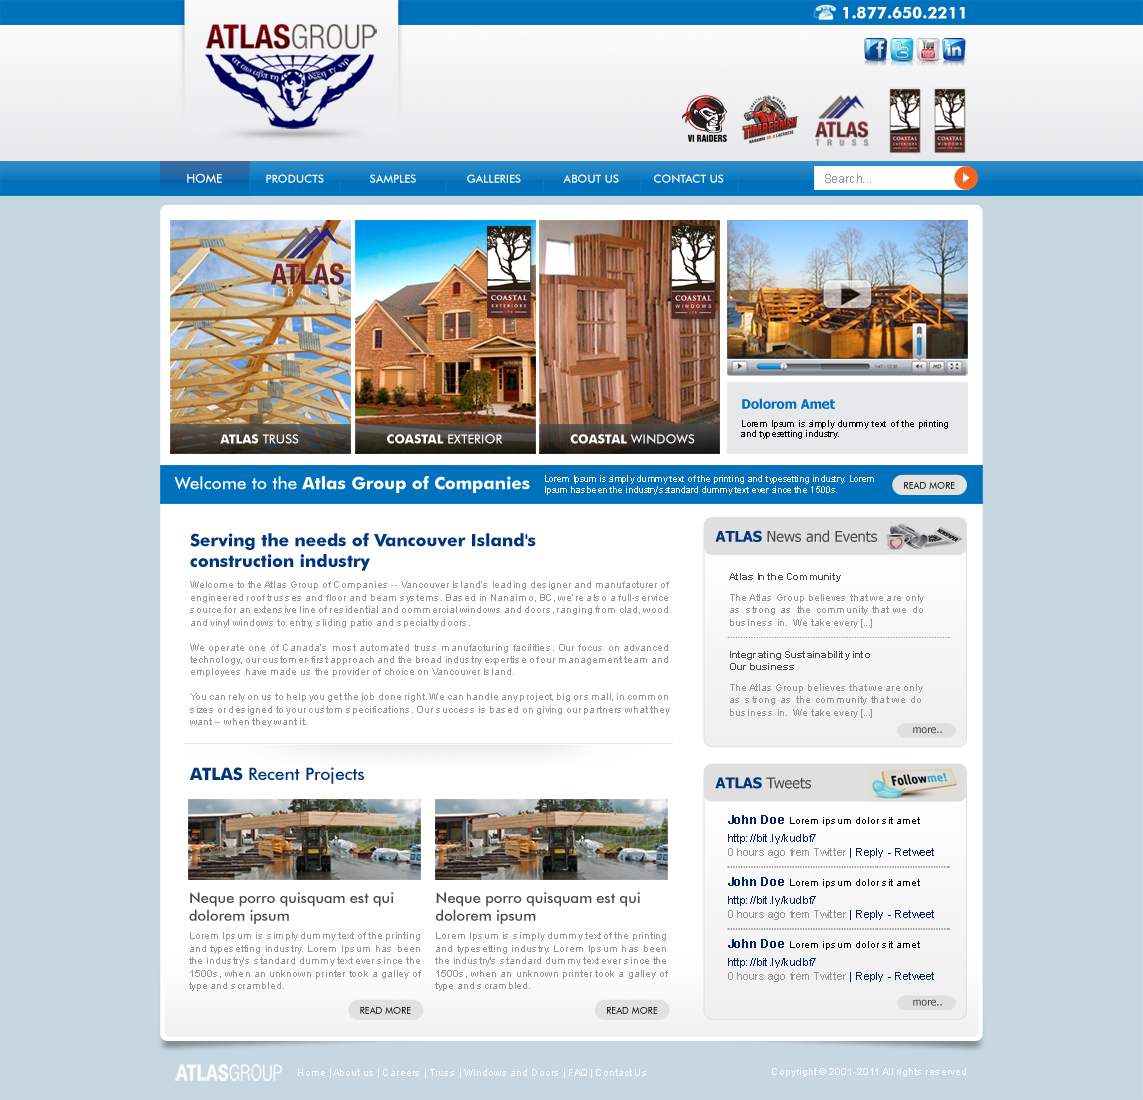 Web Page Design by ArsalanHanif - Entry No. 77 in the Web Page Design Contest The Atlas Group Website.